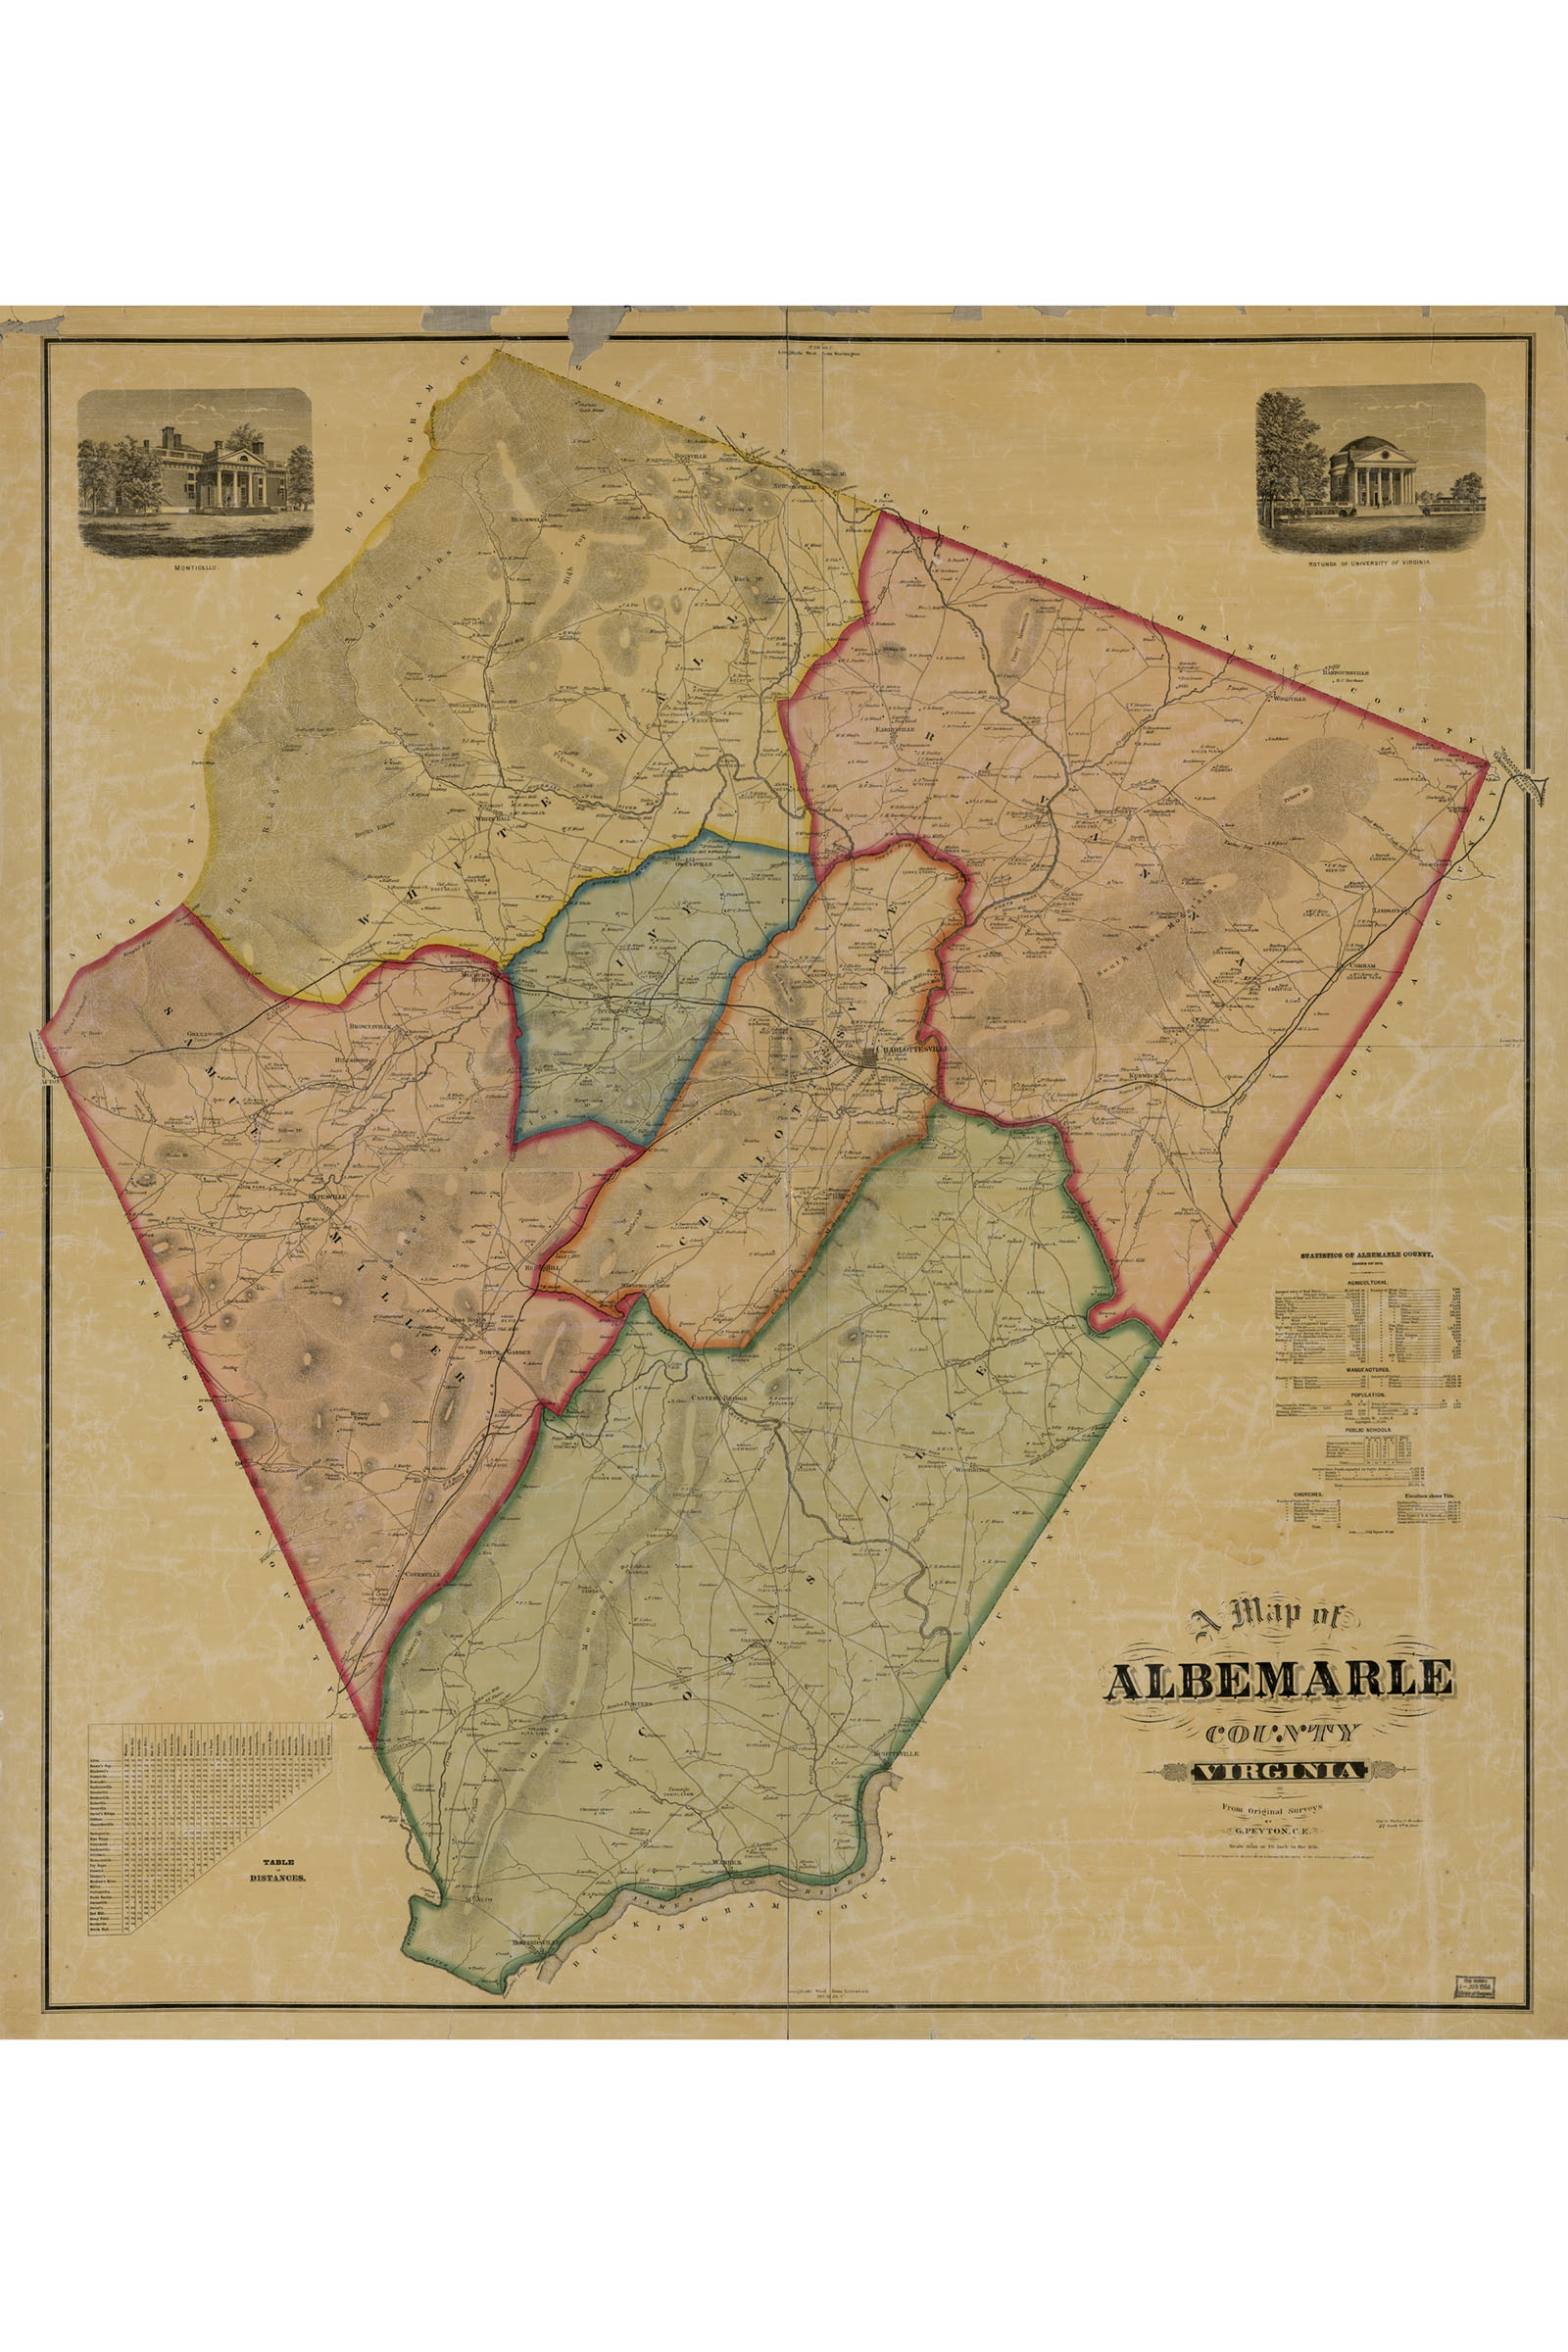 Details about Map of Albemarle County, VA including Charlottesville; on map of james city county va, map of charles city county va, map of charlotte county va, map of isle of wight county va, map of thomasville city, map of giles county va, map of gloucester county va, map of prince george county va, map of greensville county va, buchanan county va, map of elizabeth city county va, map of norfolk city county va, map of nelson county va, map of bland county va, towns in louisa county va, map of new kent county va, towns in augusta county va, weather albemarle county va, cities in orange county va, map of king and queen county va,